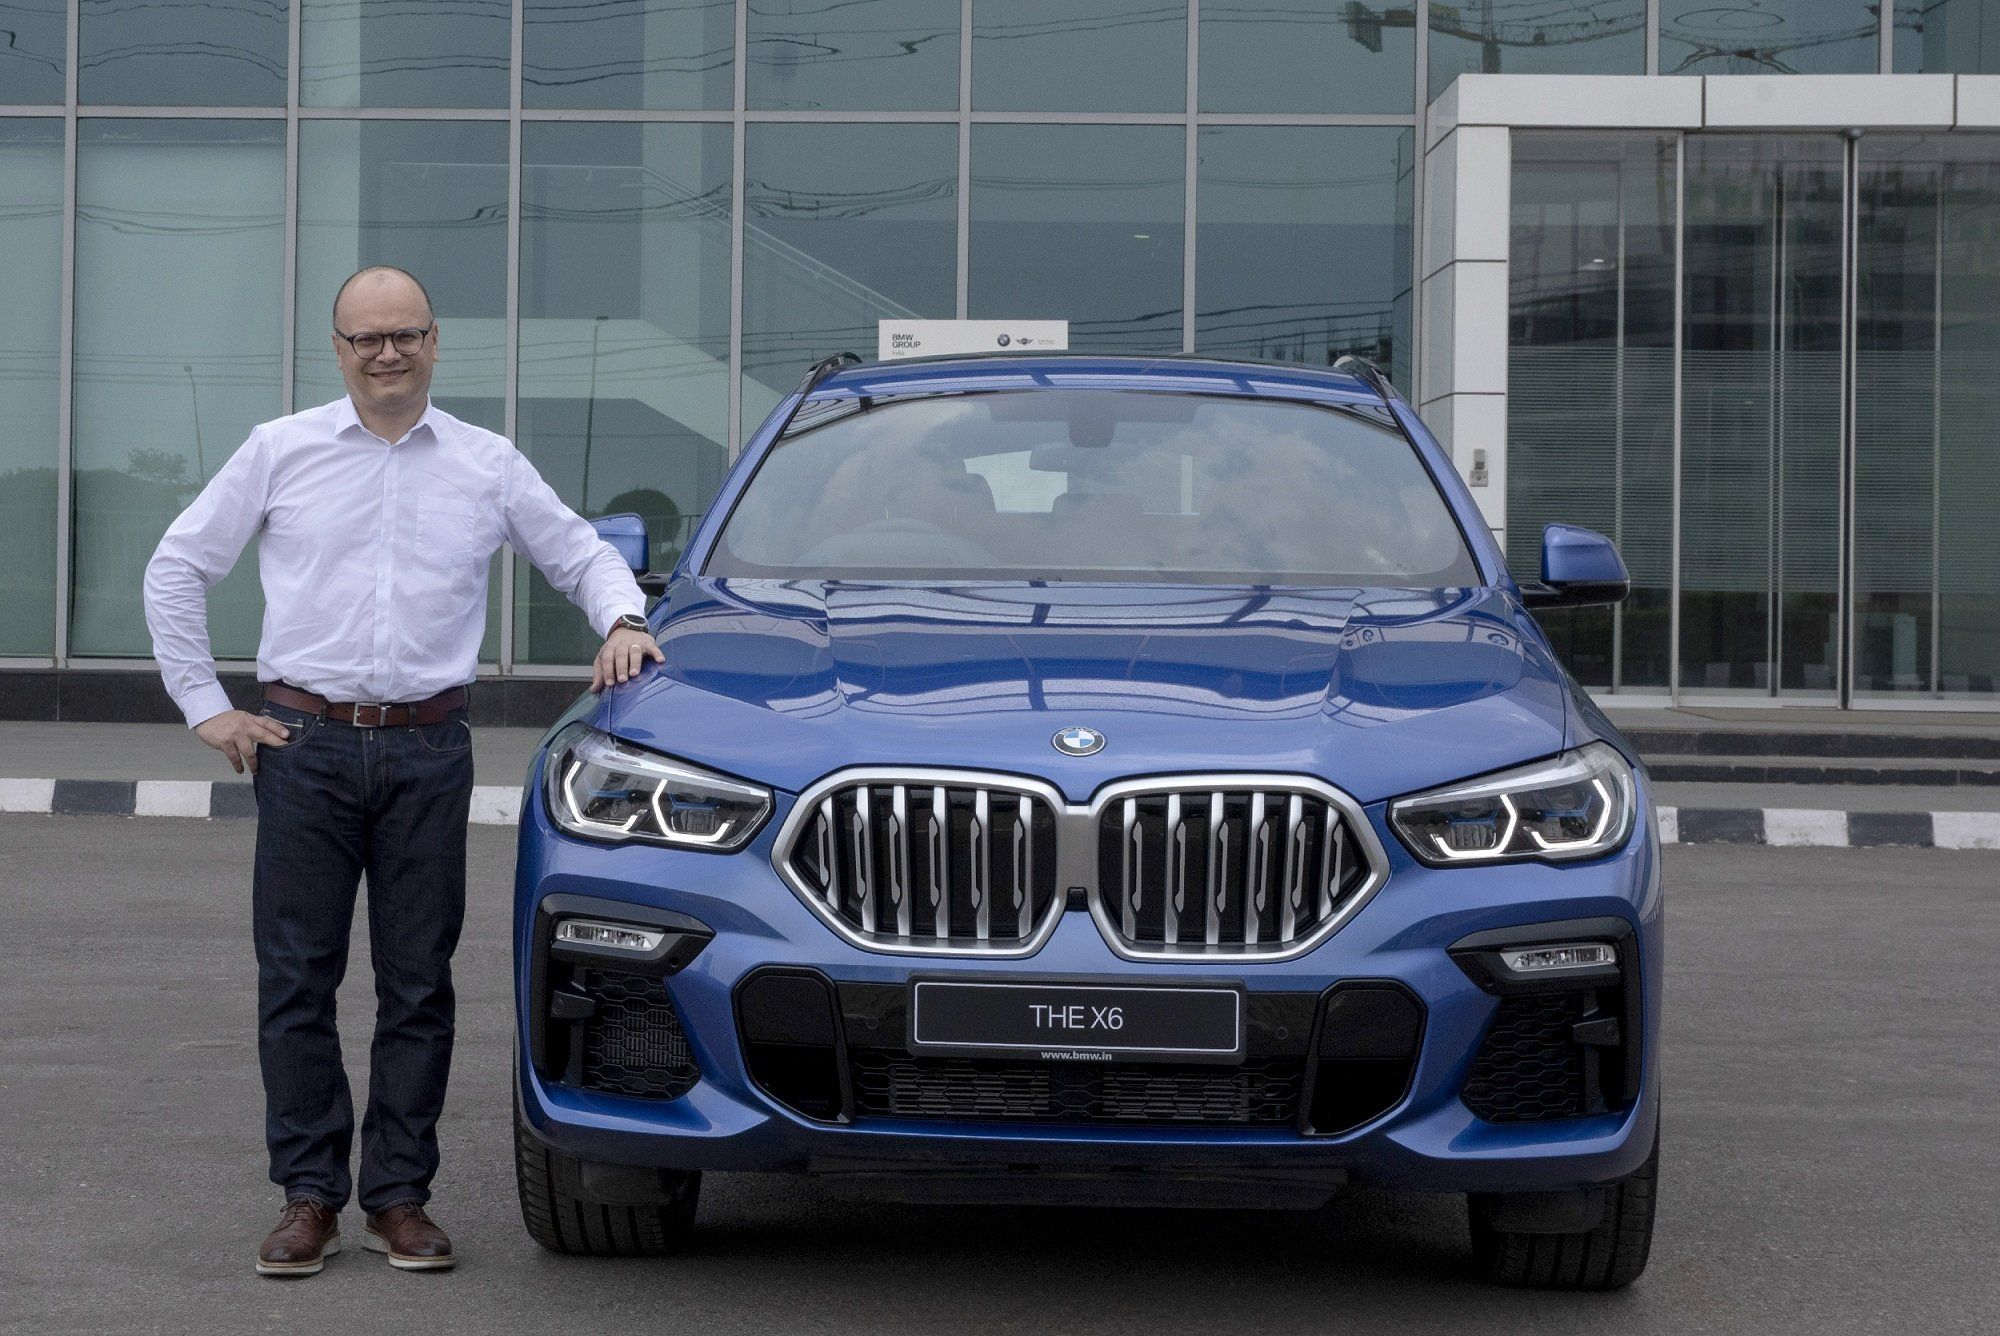 2020 Bmw X6 Launched In India At Inr 95 Lakh In 2020 Bmw X6 Bmw Bmw X Models